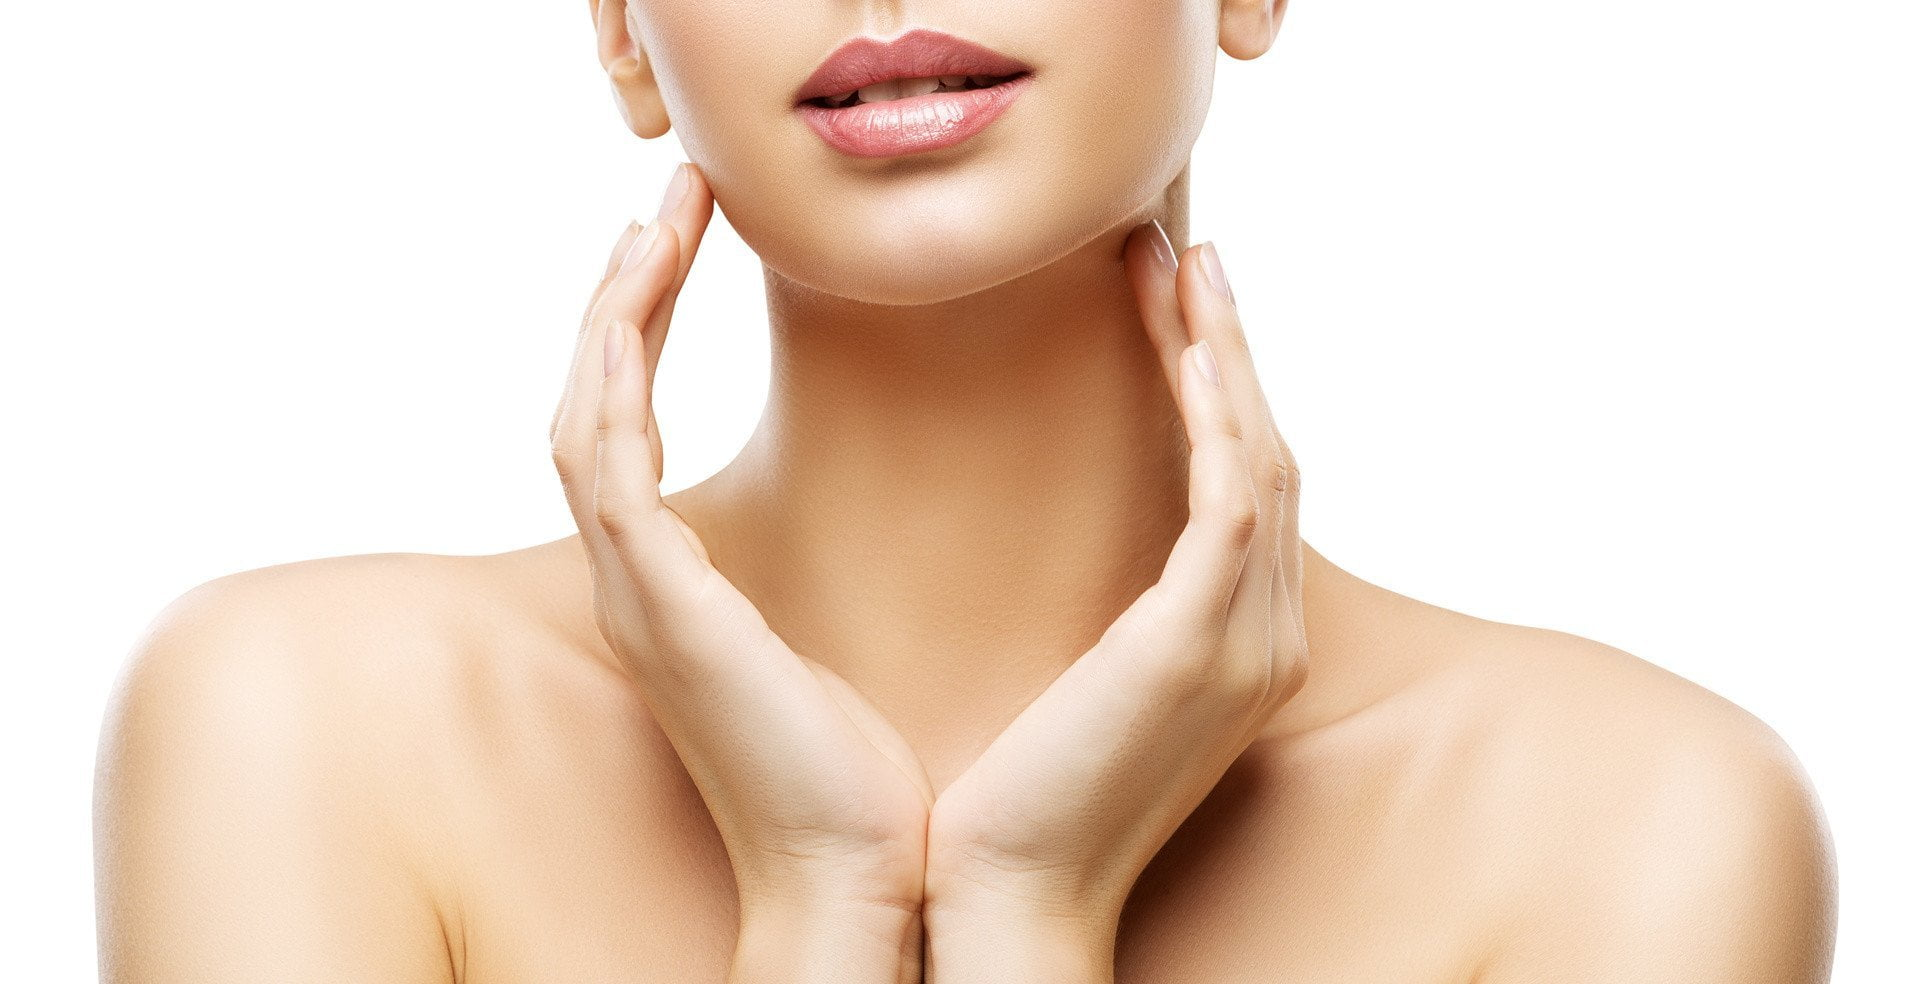 Natural Glow: 10 Essential Beauty Tips for Oily Skin - swissbotany